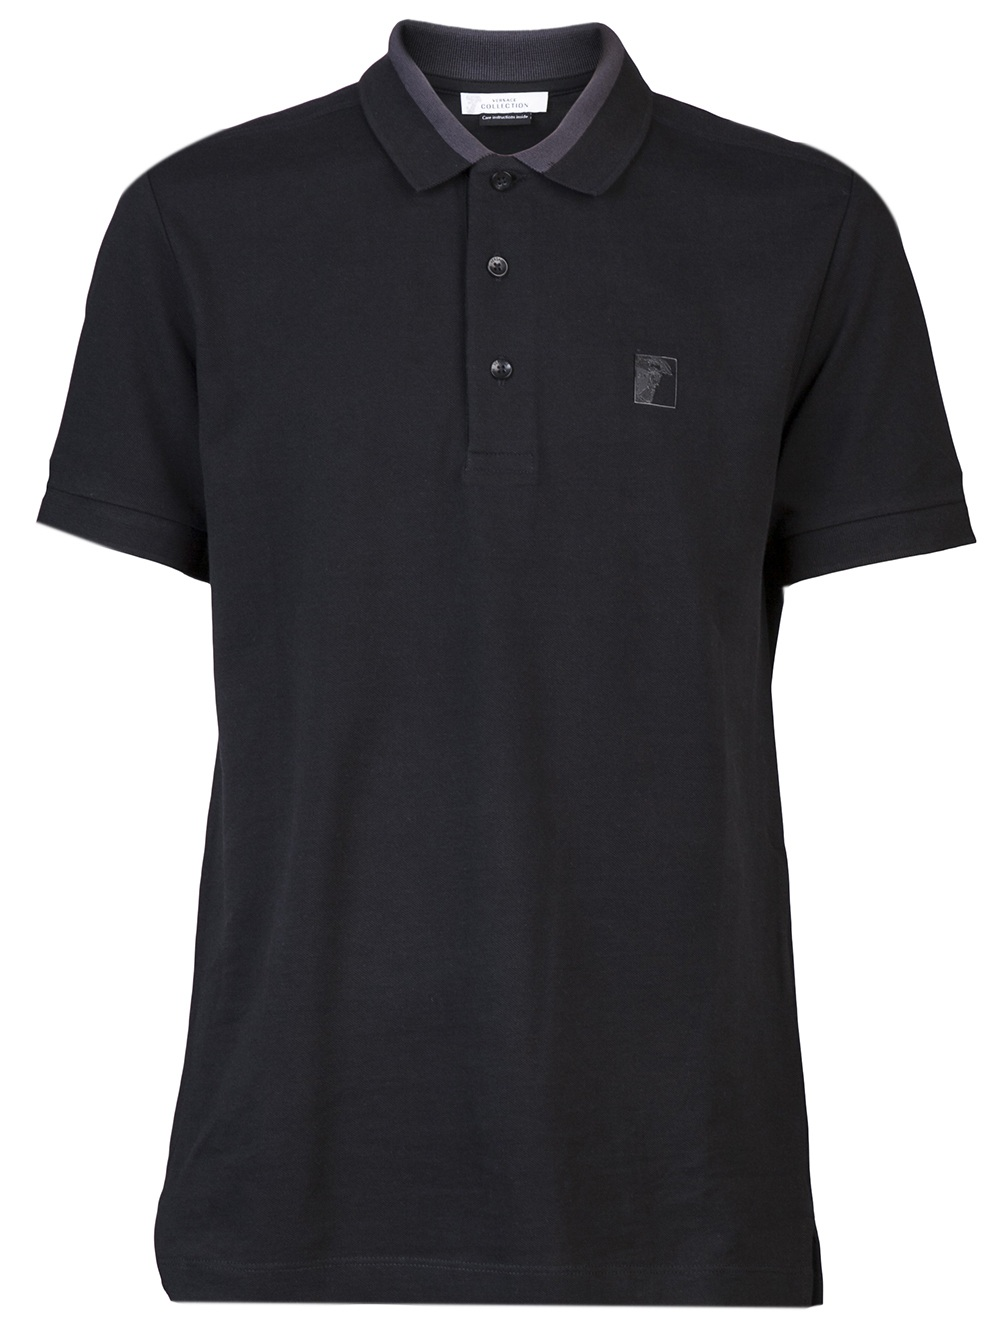 Versace Pique Polo Shirt In Black For Men Lyst